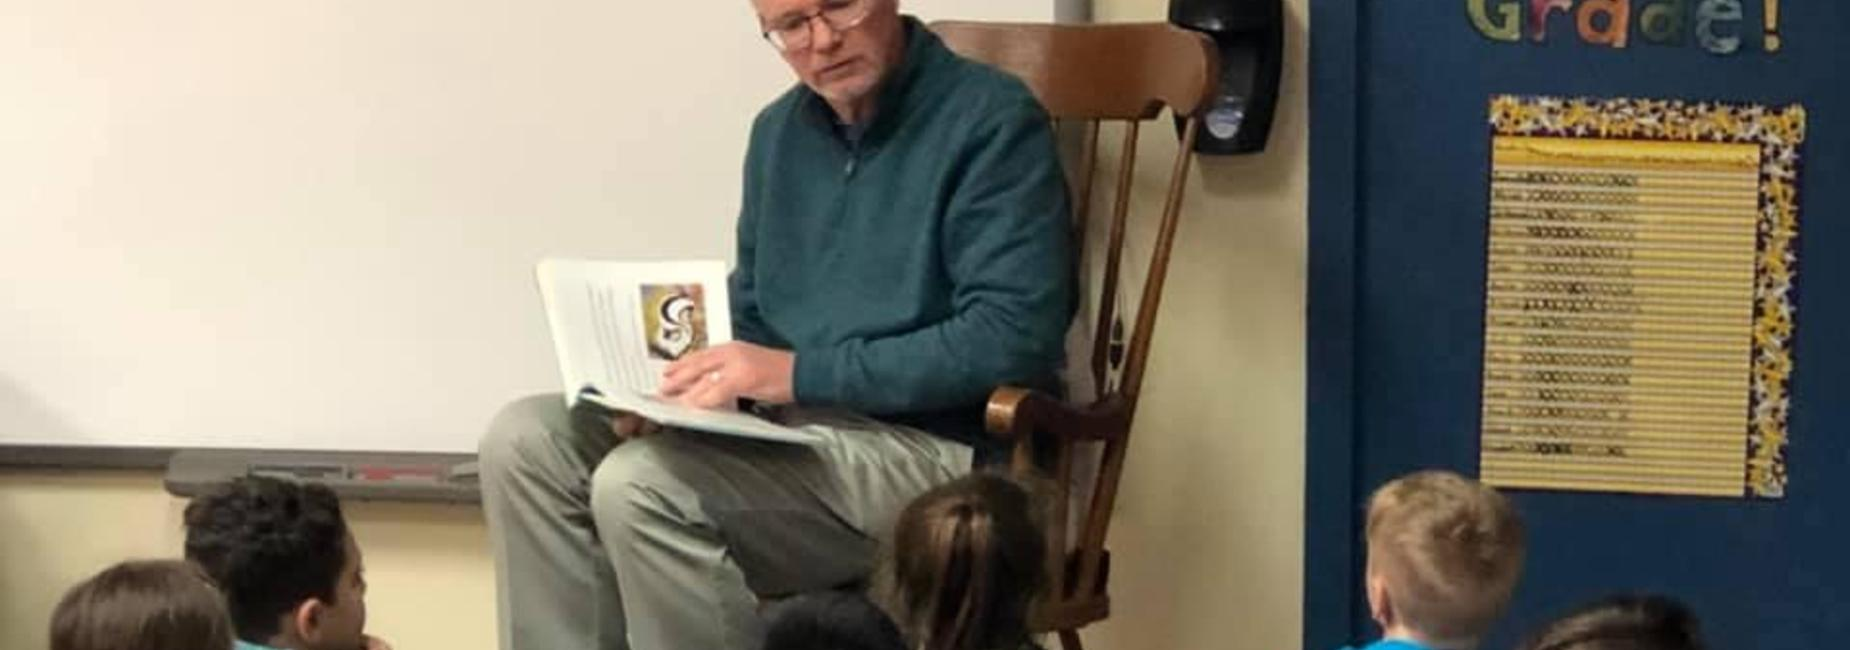 Mr. Jones reading to children